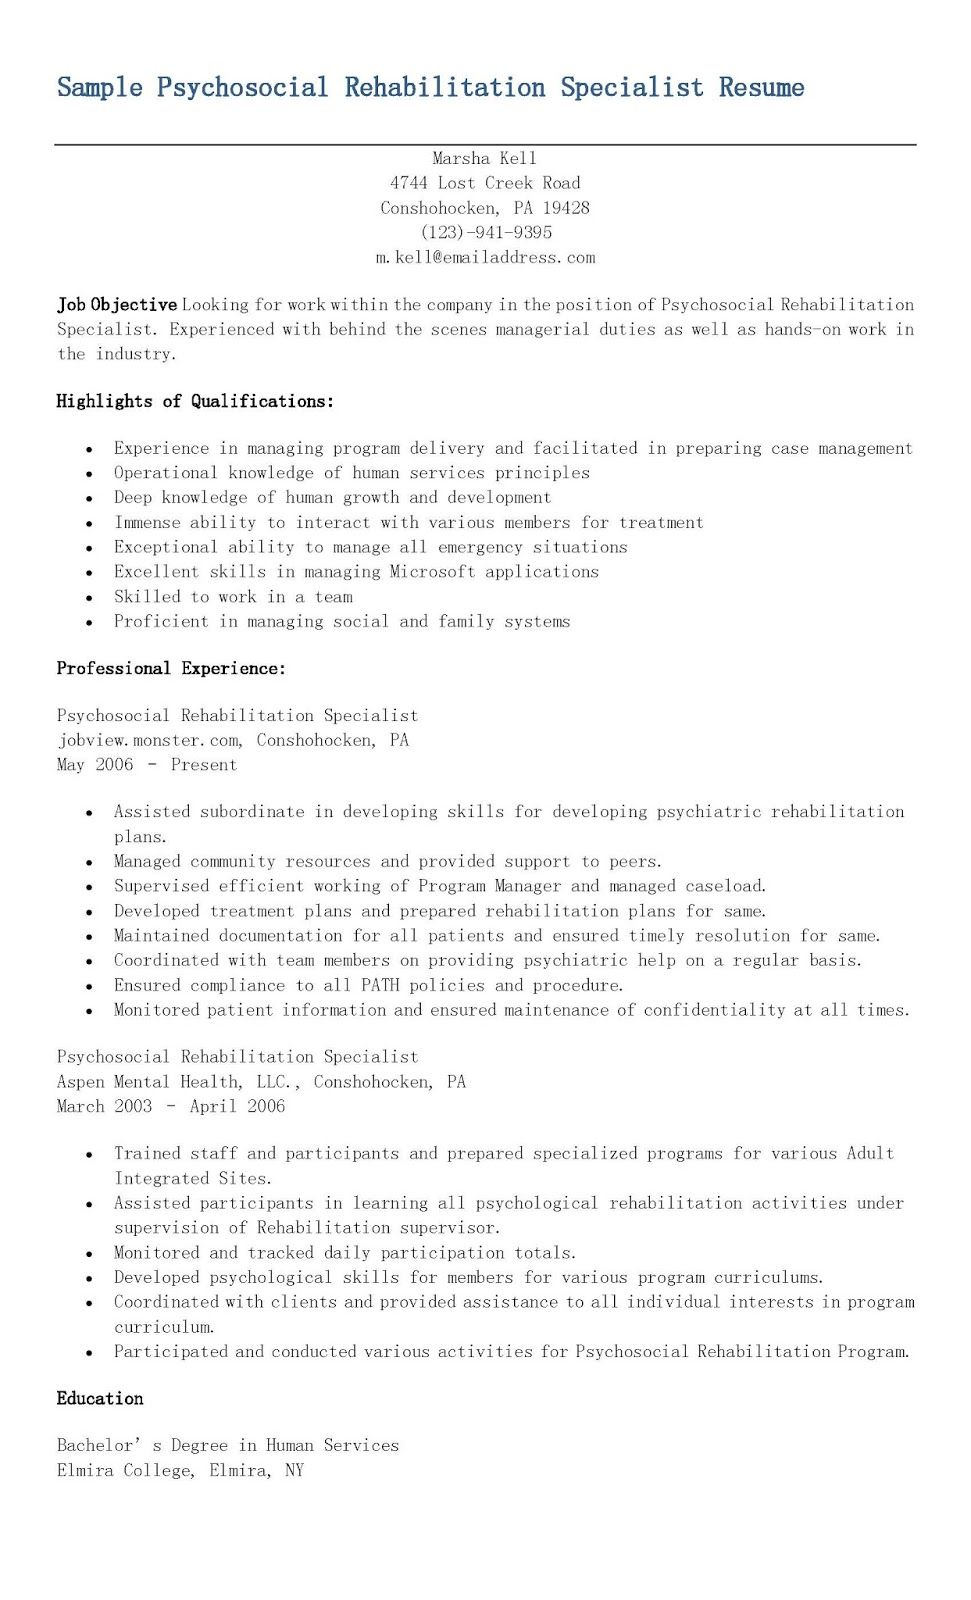 Sample Psychosocial Rehabilitation Specialist Resume  Resame